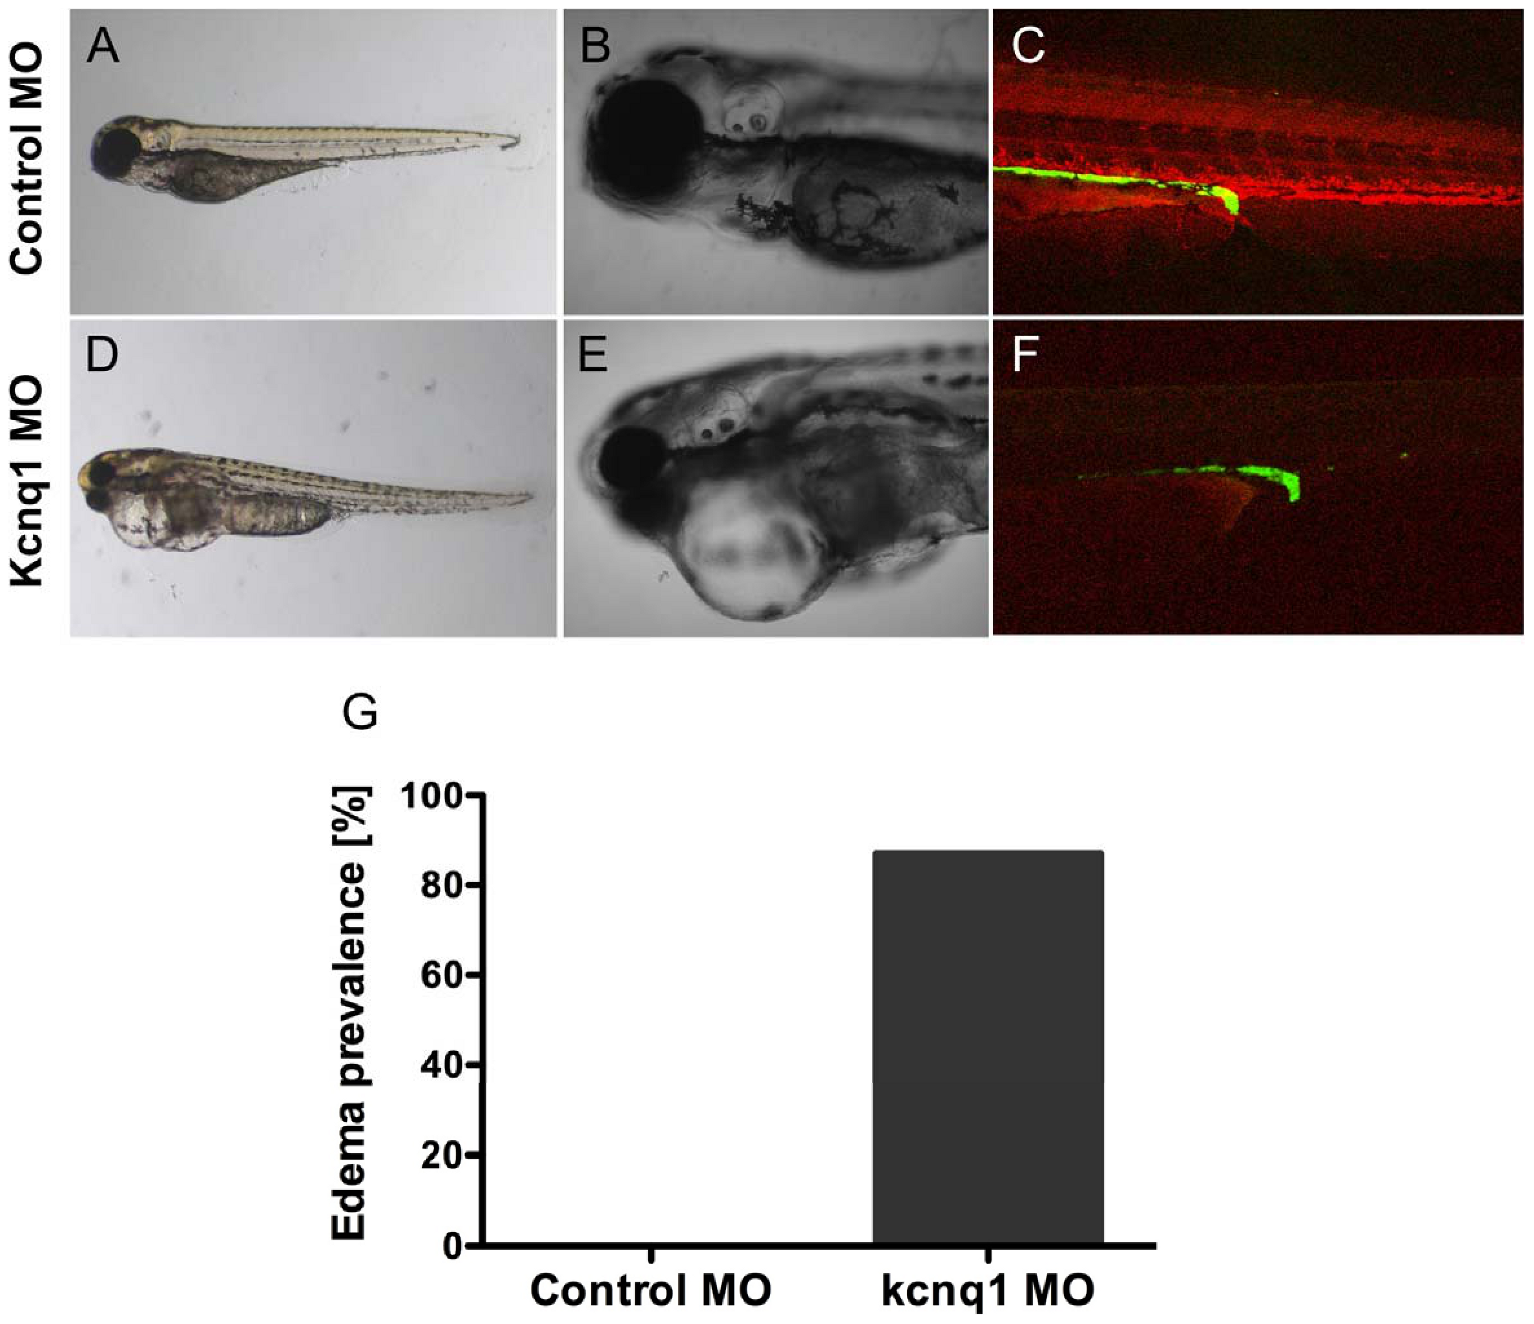 <i>Tg(cdh17:GFP)</i> embryos were injected with 200 uM control or kcnq1 morpholino (MO) at the 1-cell stage.